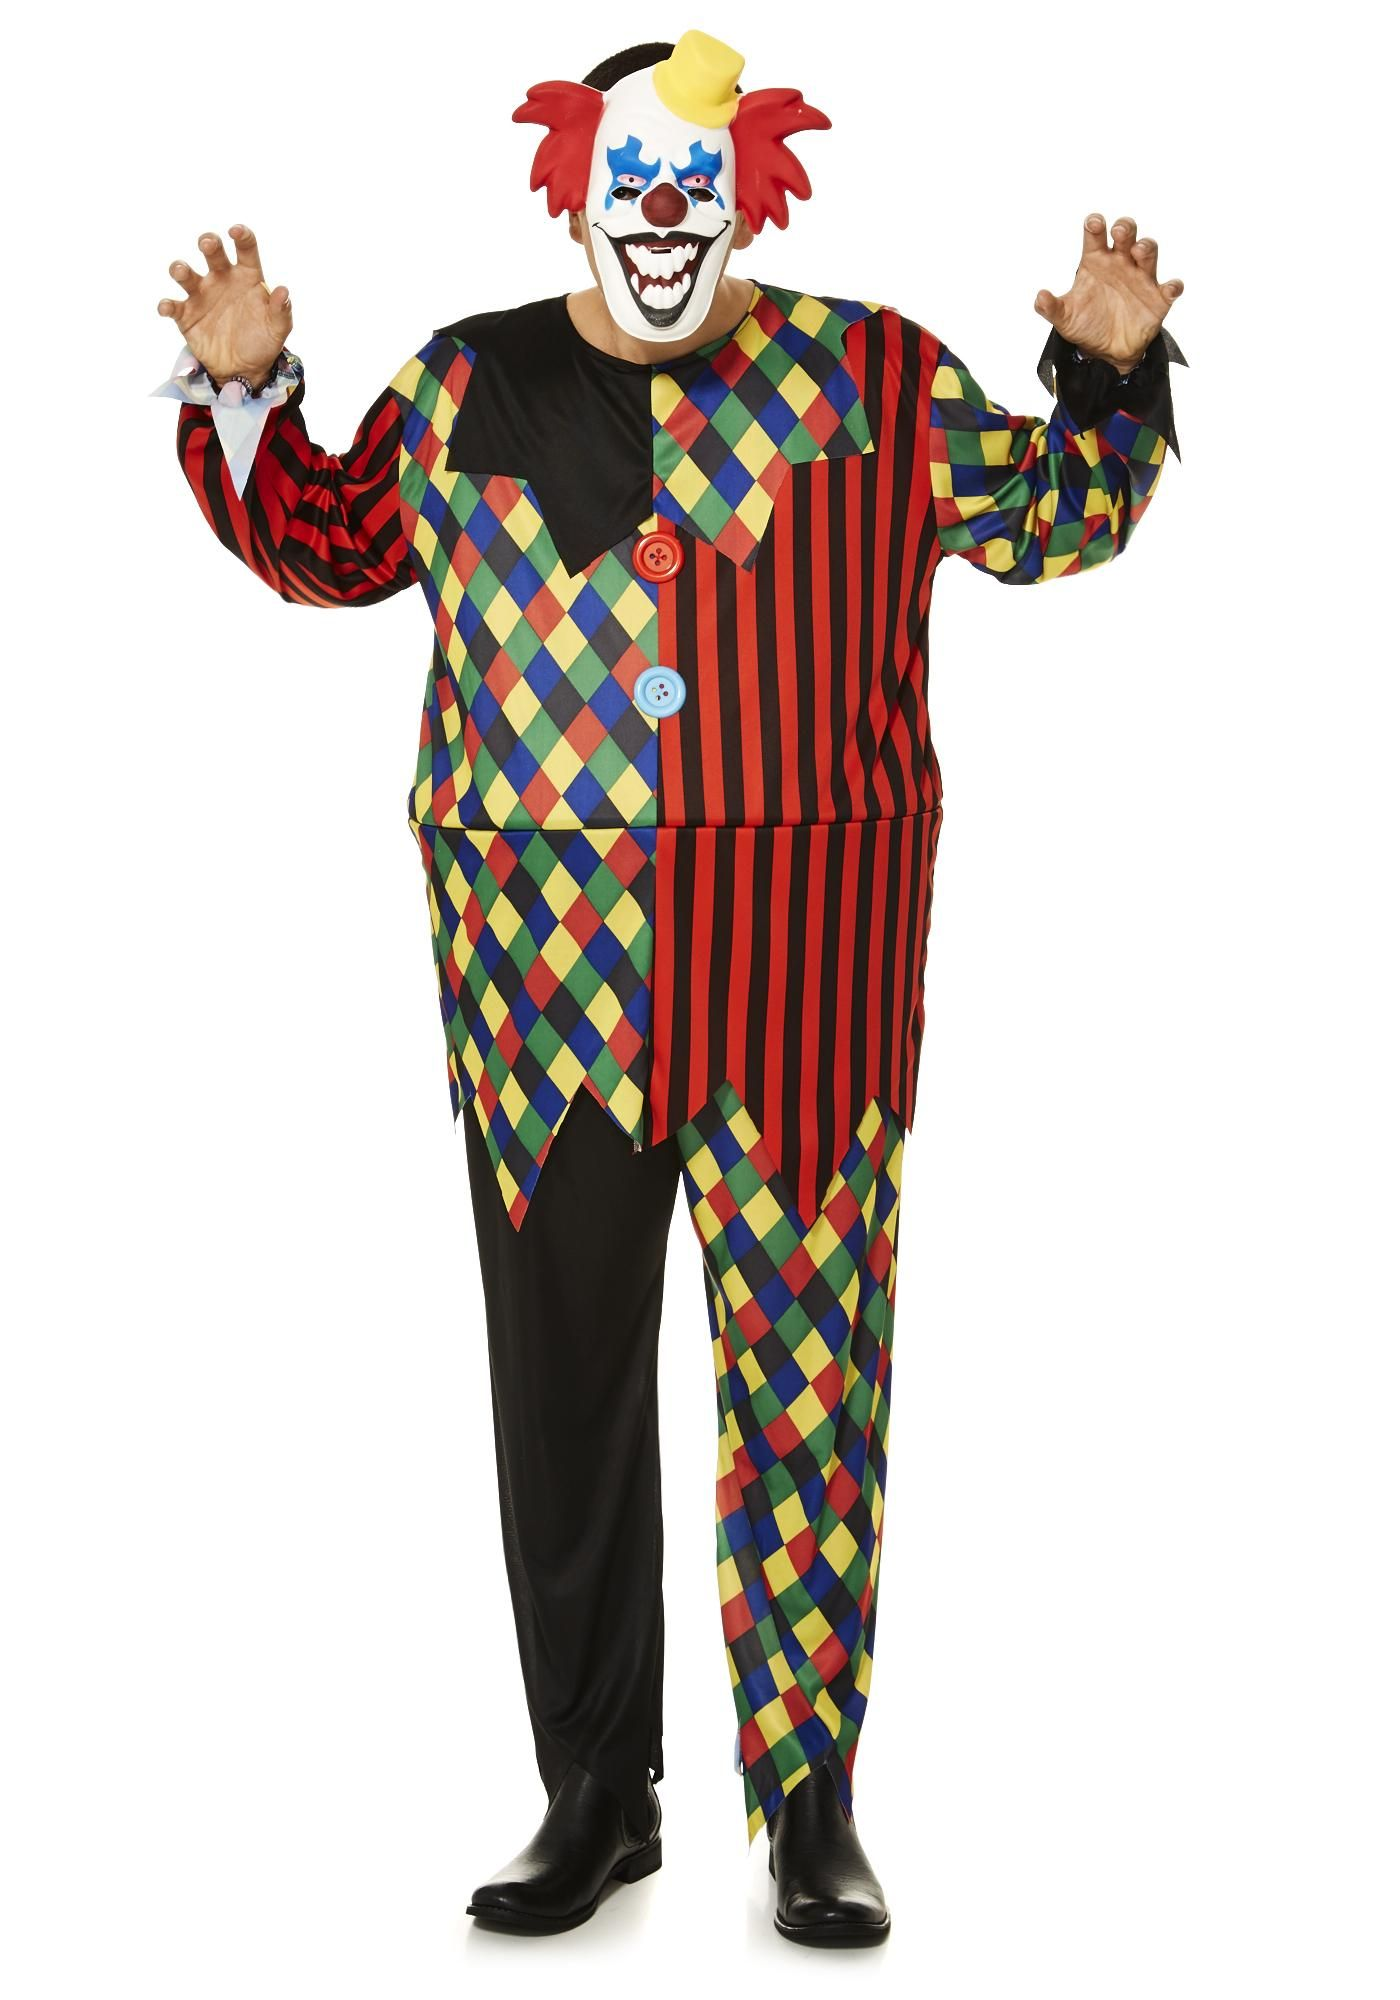 Tesco F&F Halloween Clown DressUp Costume €1622 Clown